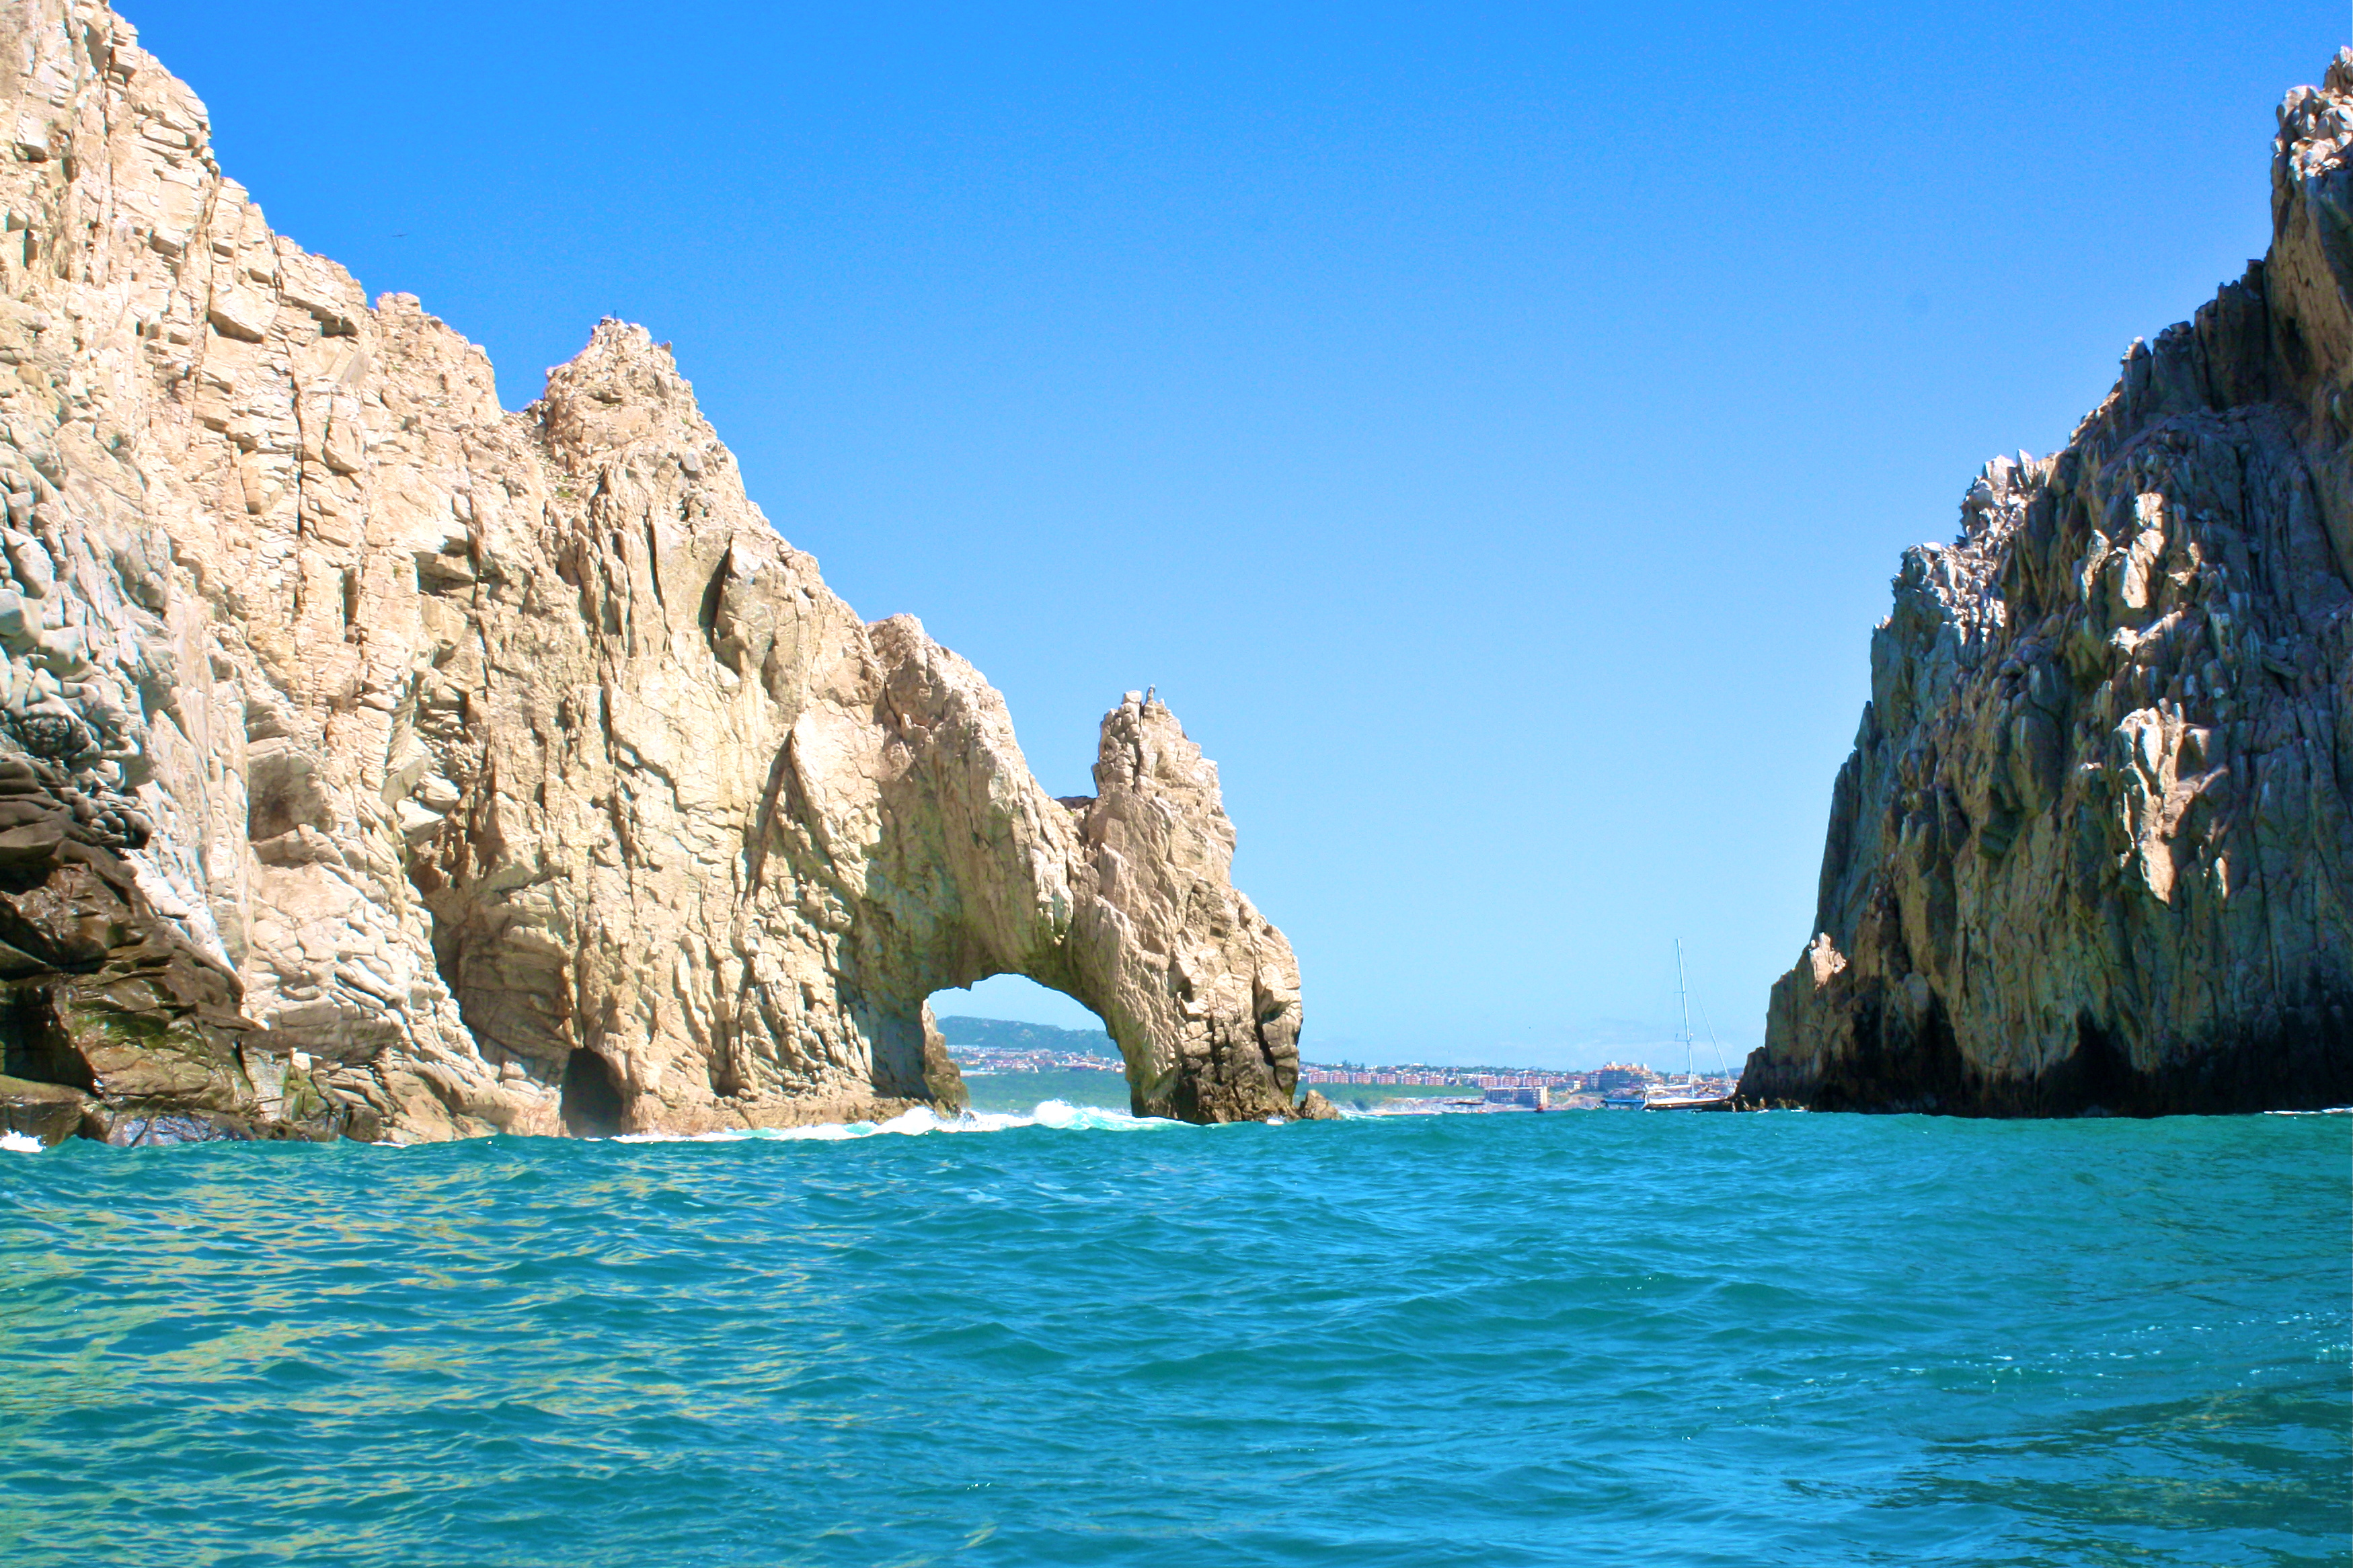 The Arch Cabo